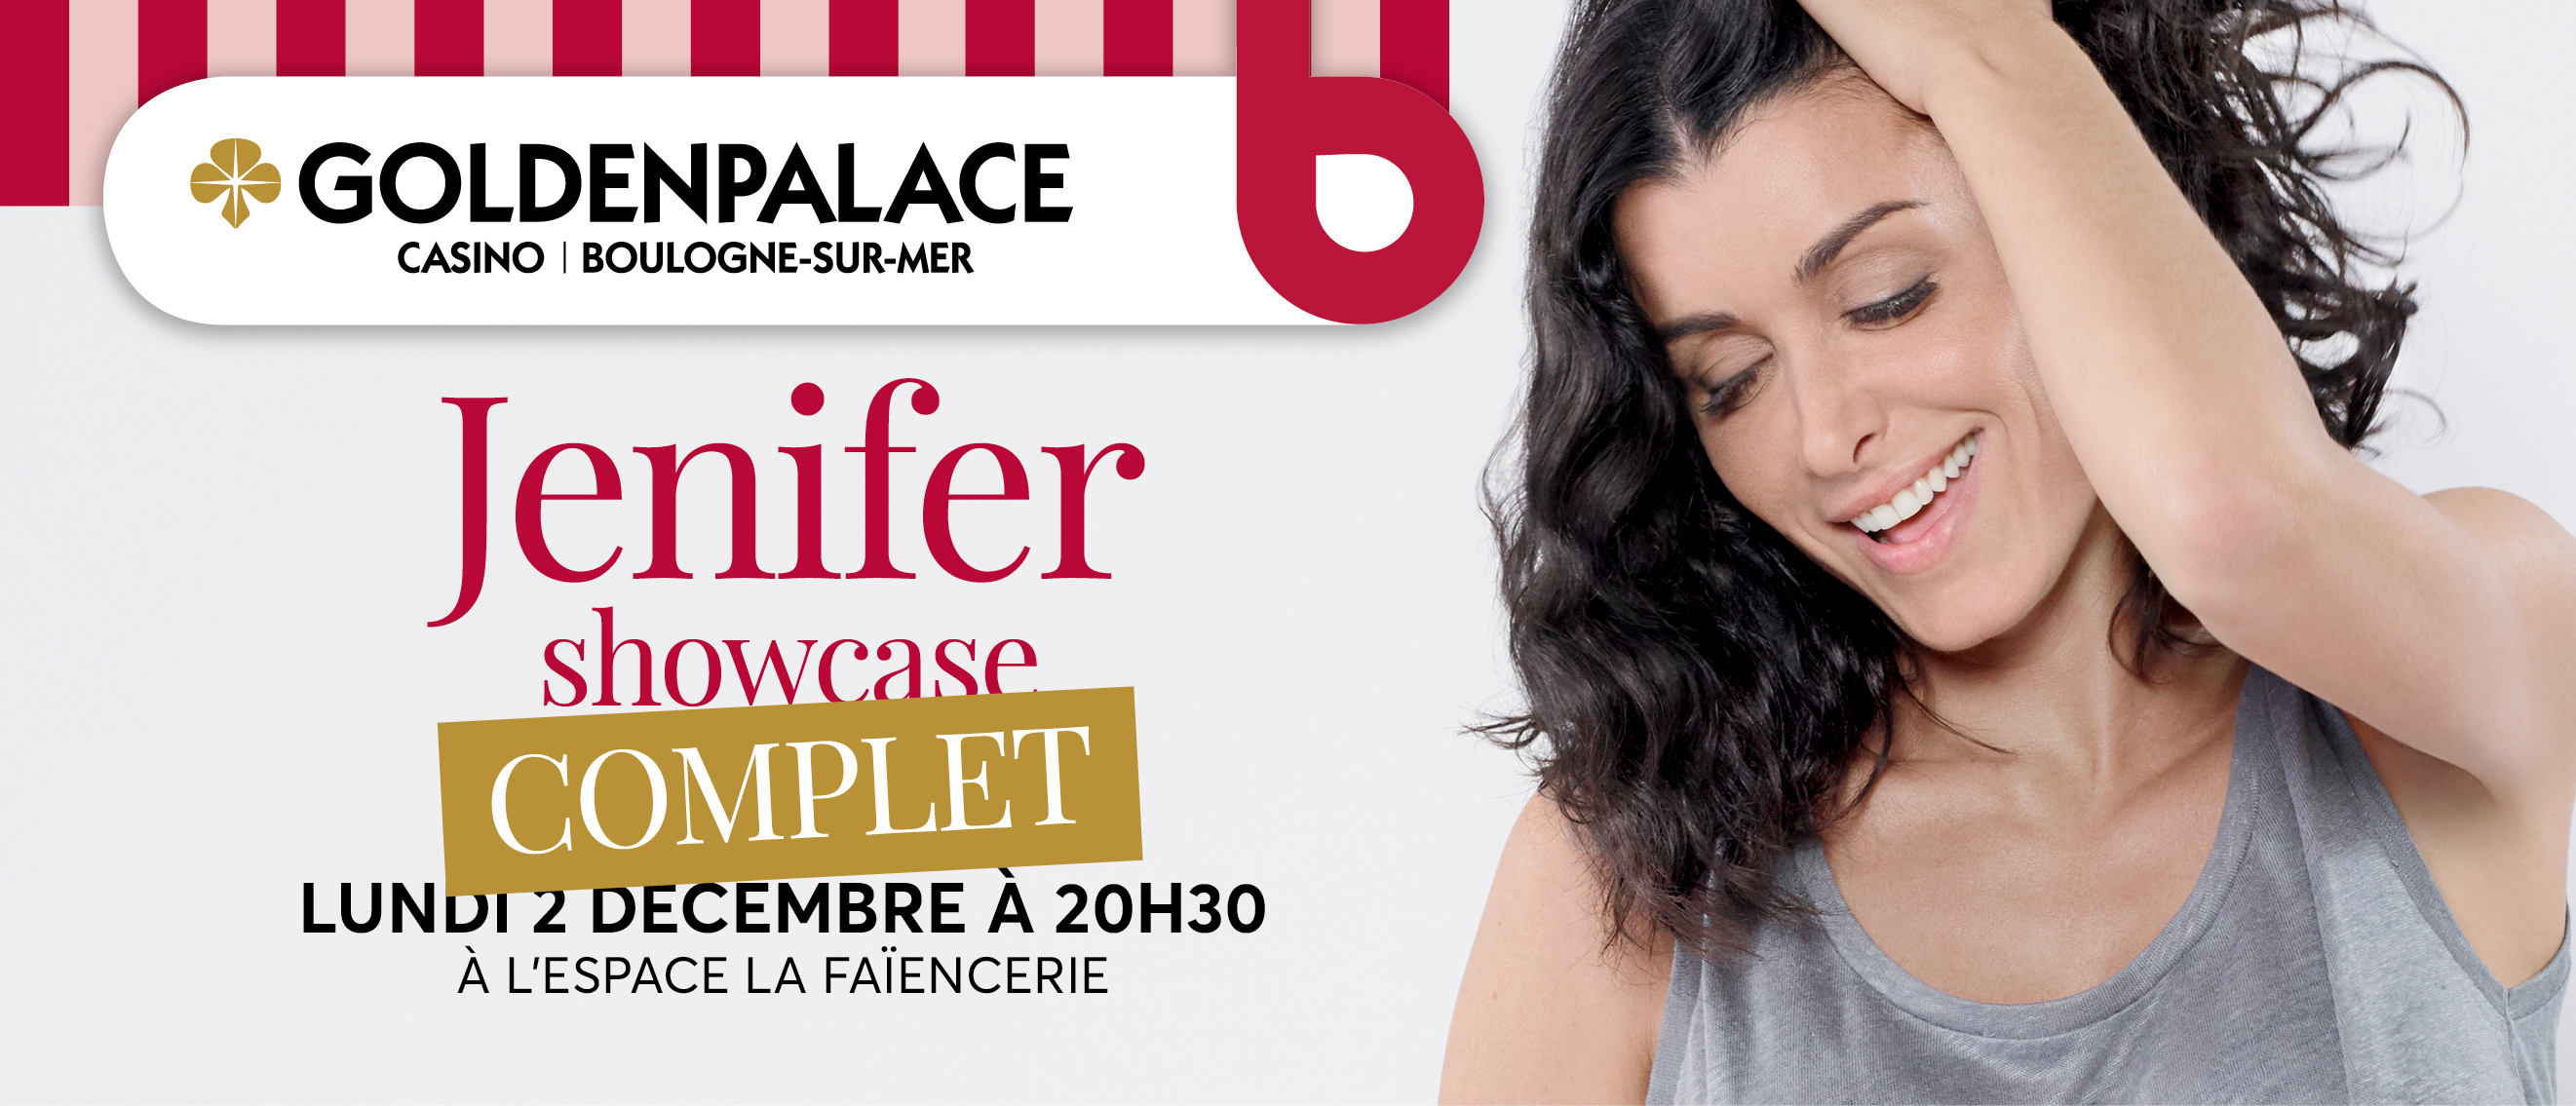 Jenifer en showcase à la Faïencerie